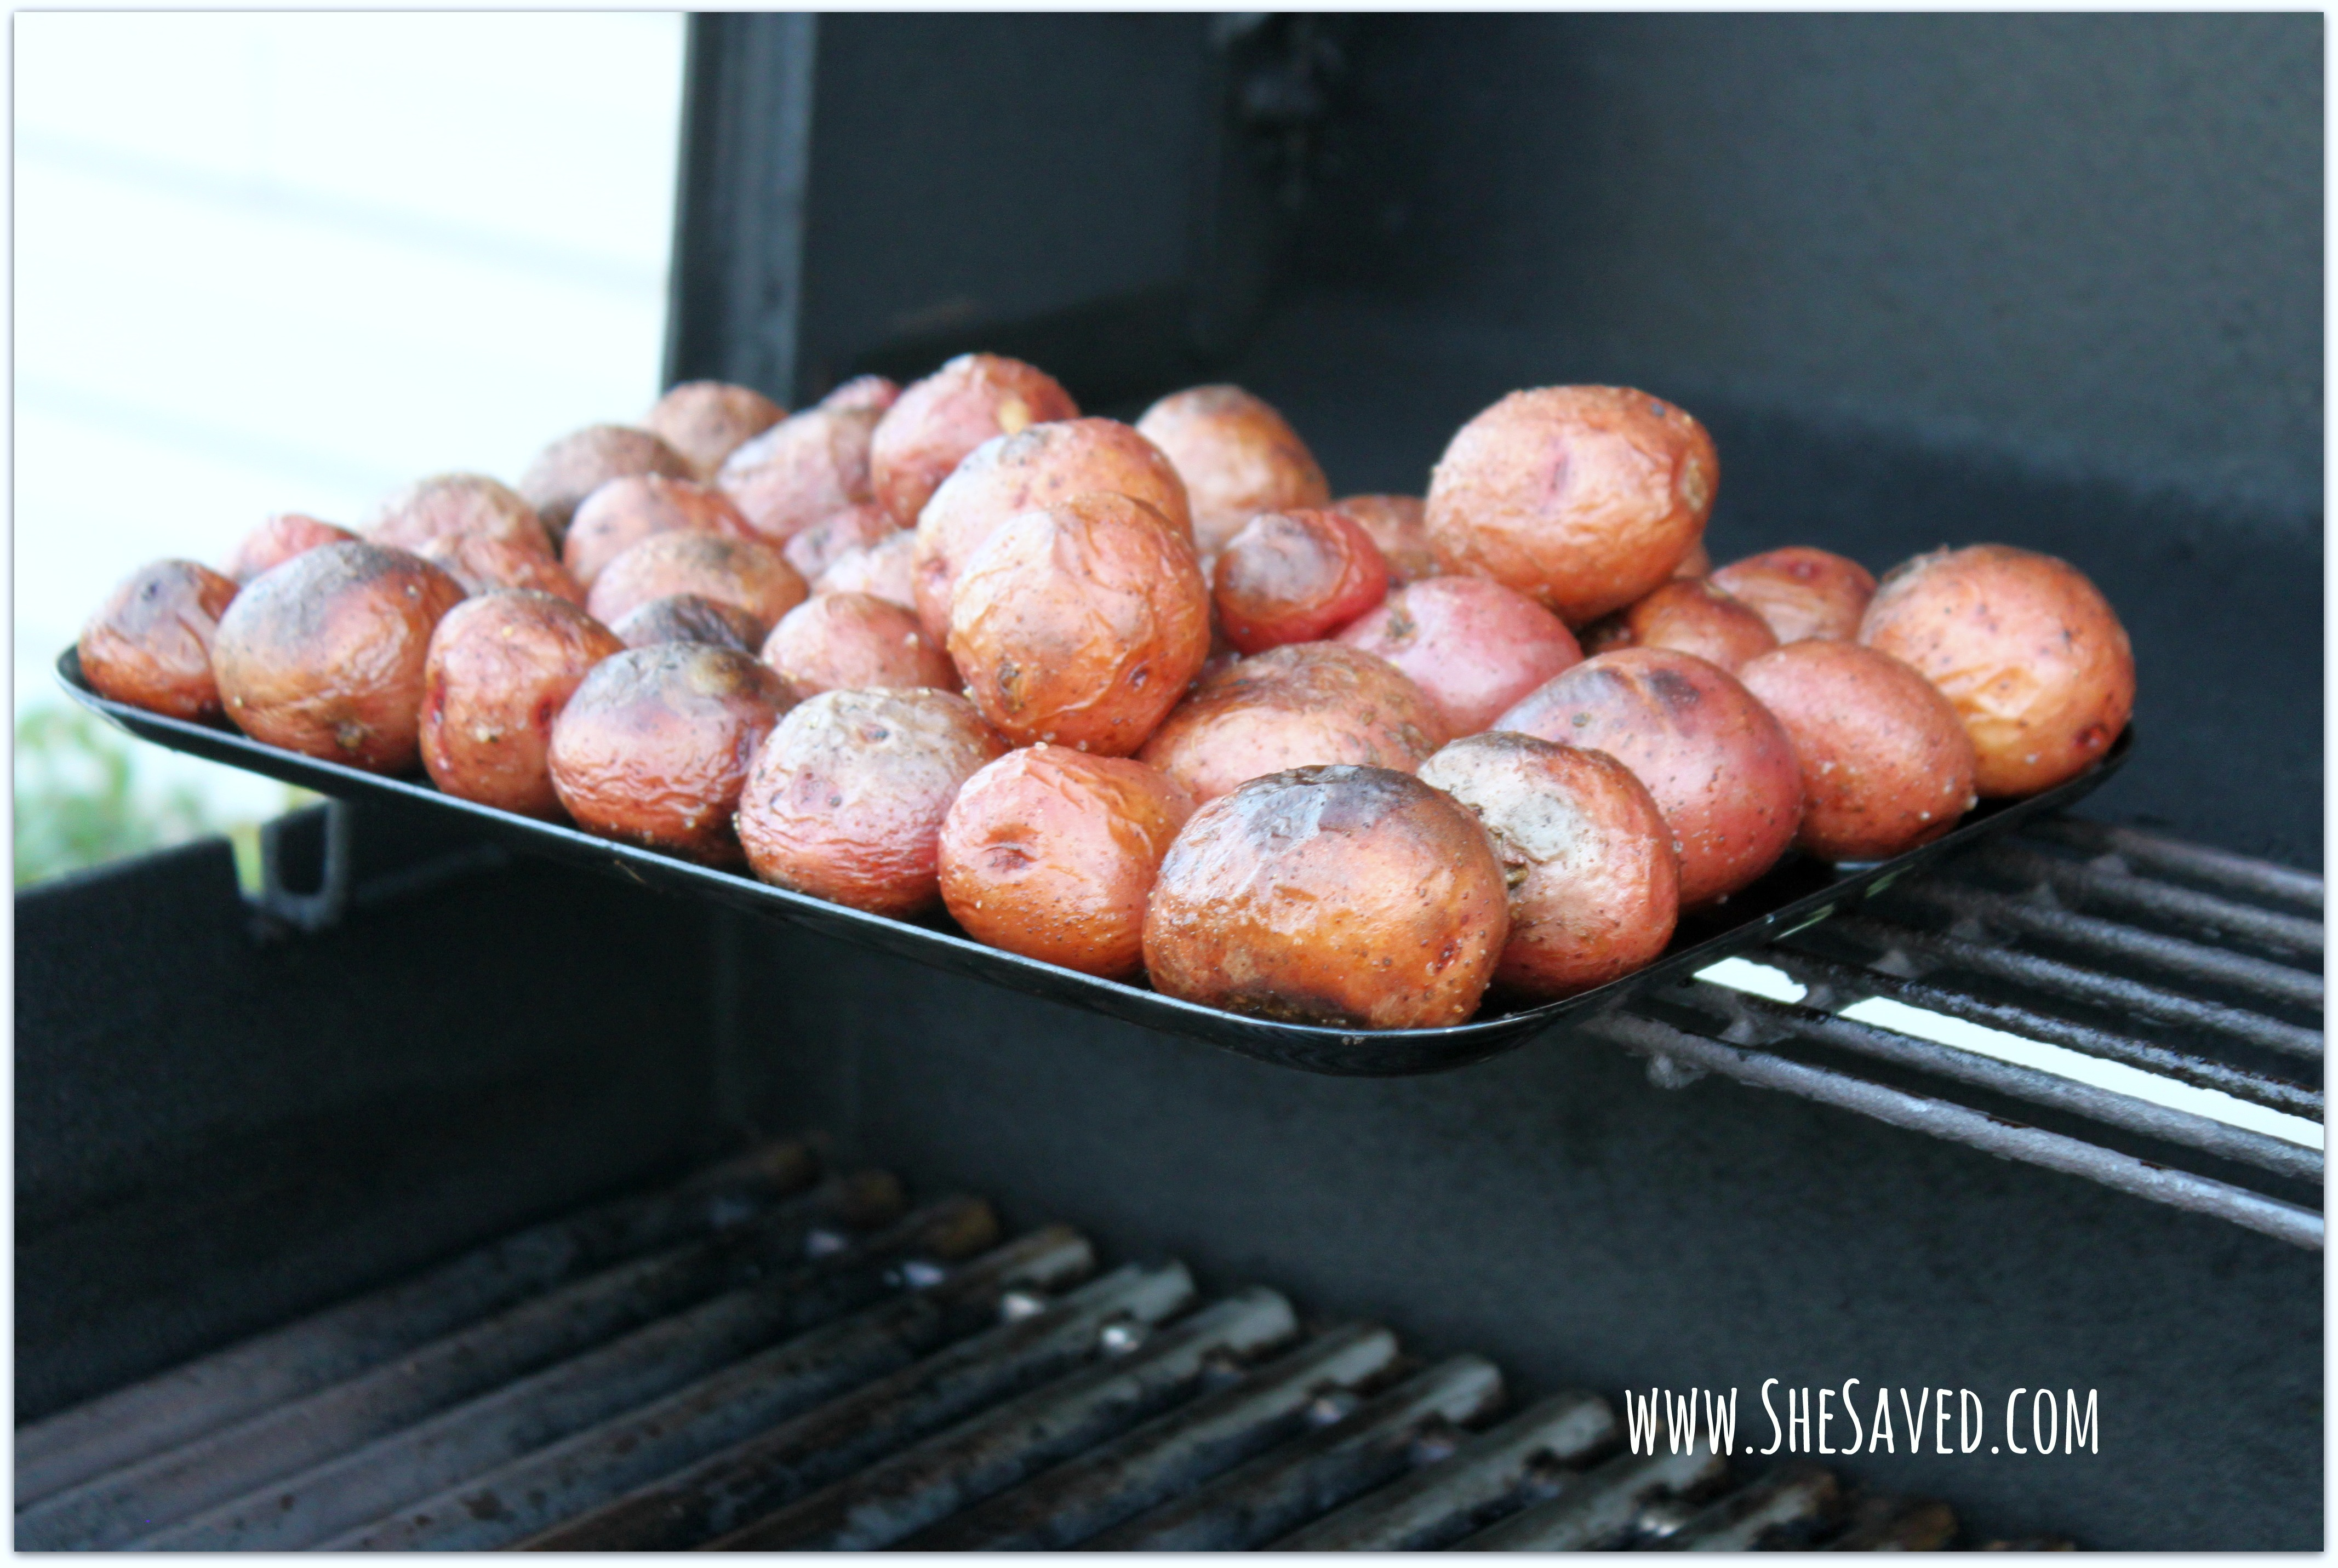 Grill Roasted New Potatoes - SheSaved®